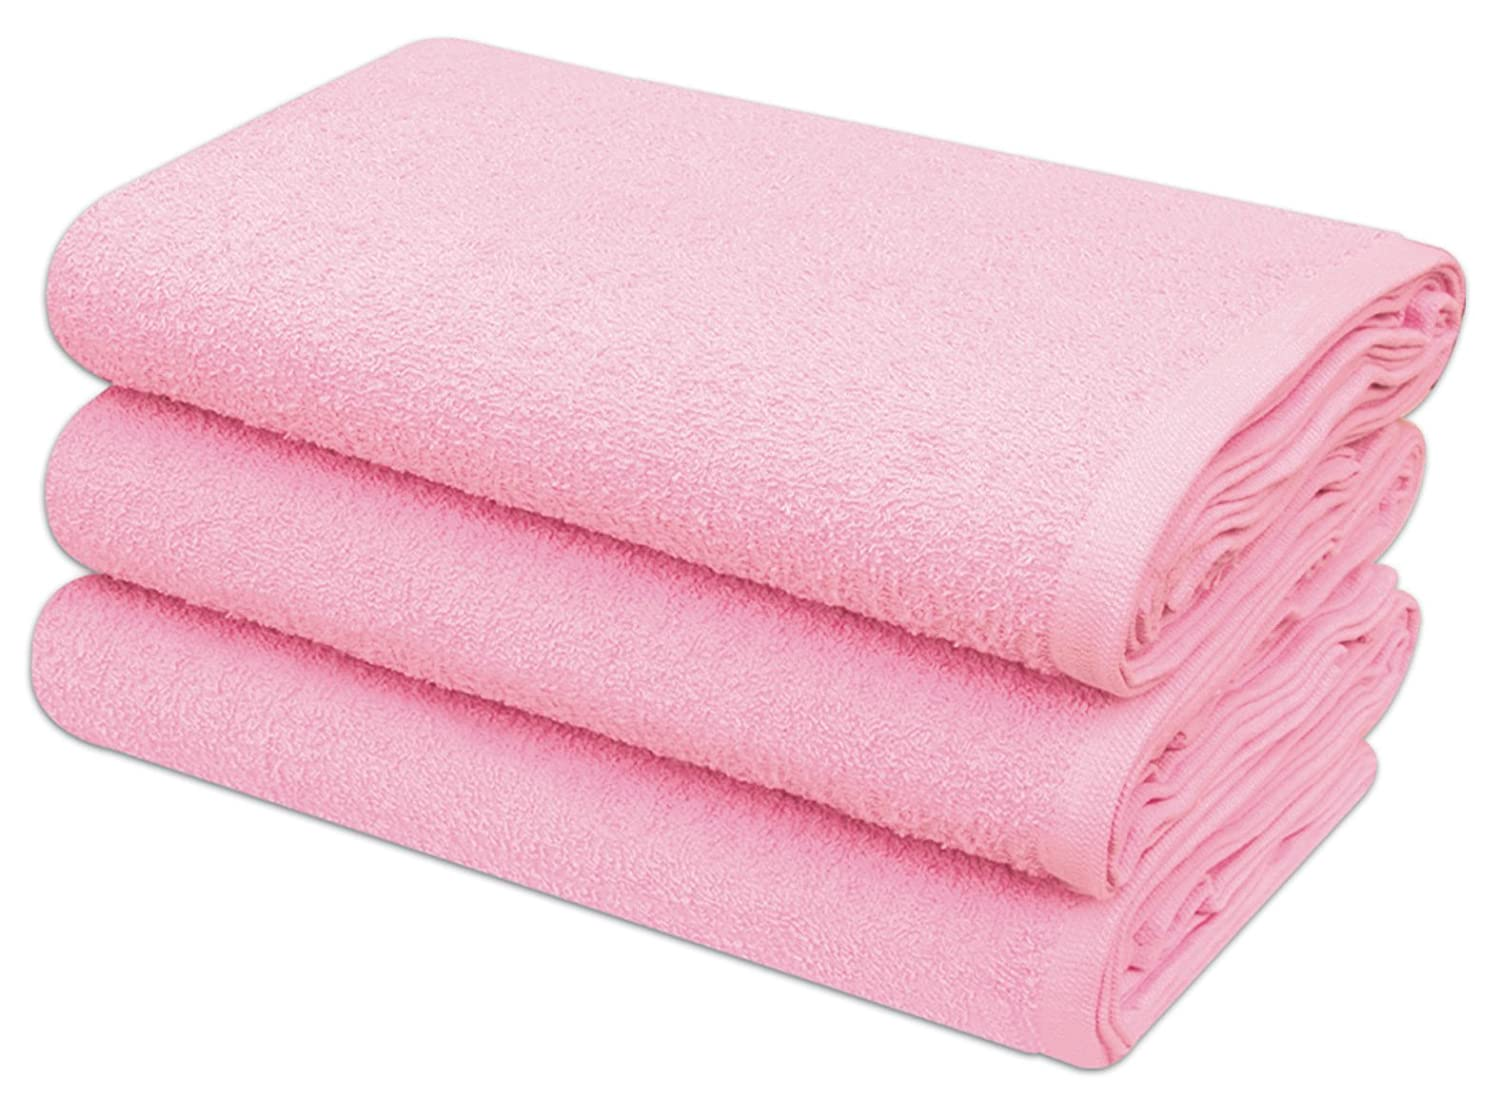 Pack of 12 DARLING Premium Quality Soft Baby Terry Towelling Nappies 100% Cotton (Pink)